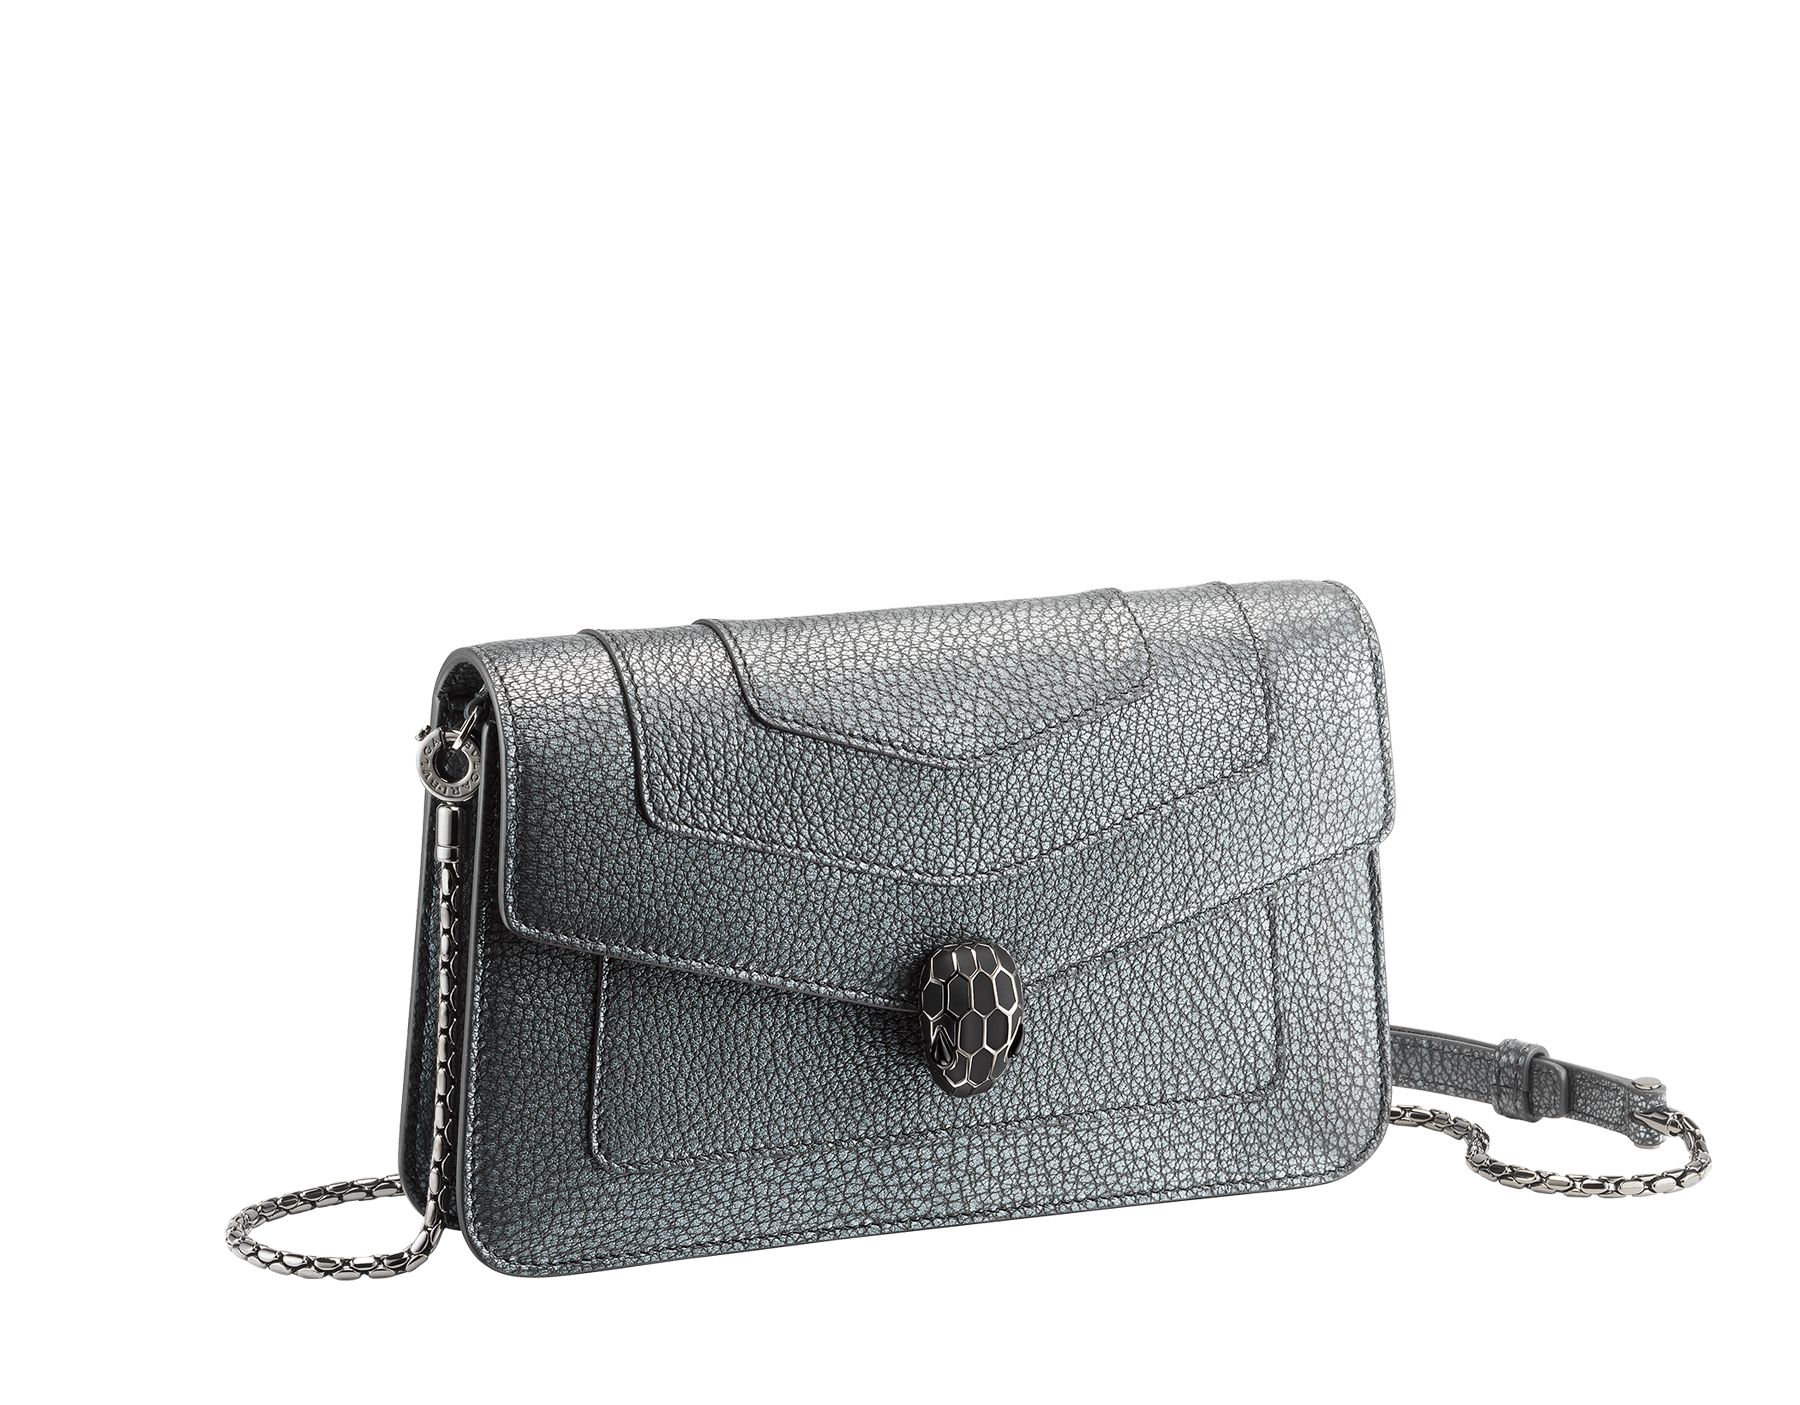 """Serpenti Forever"" new chain wallet in Charcoal Diamond gray goatskin with a pearled effect and black nappa leather. Dark ruthenium-plated brass iconic snakehead stud closure enameled in matte and shiny black, finished with black onyx eyes. SEA-CHAINPOCHETTE-PSL image 1"